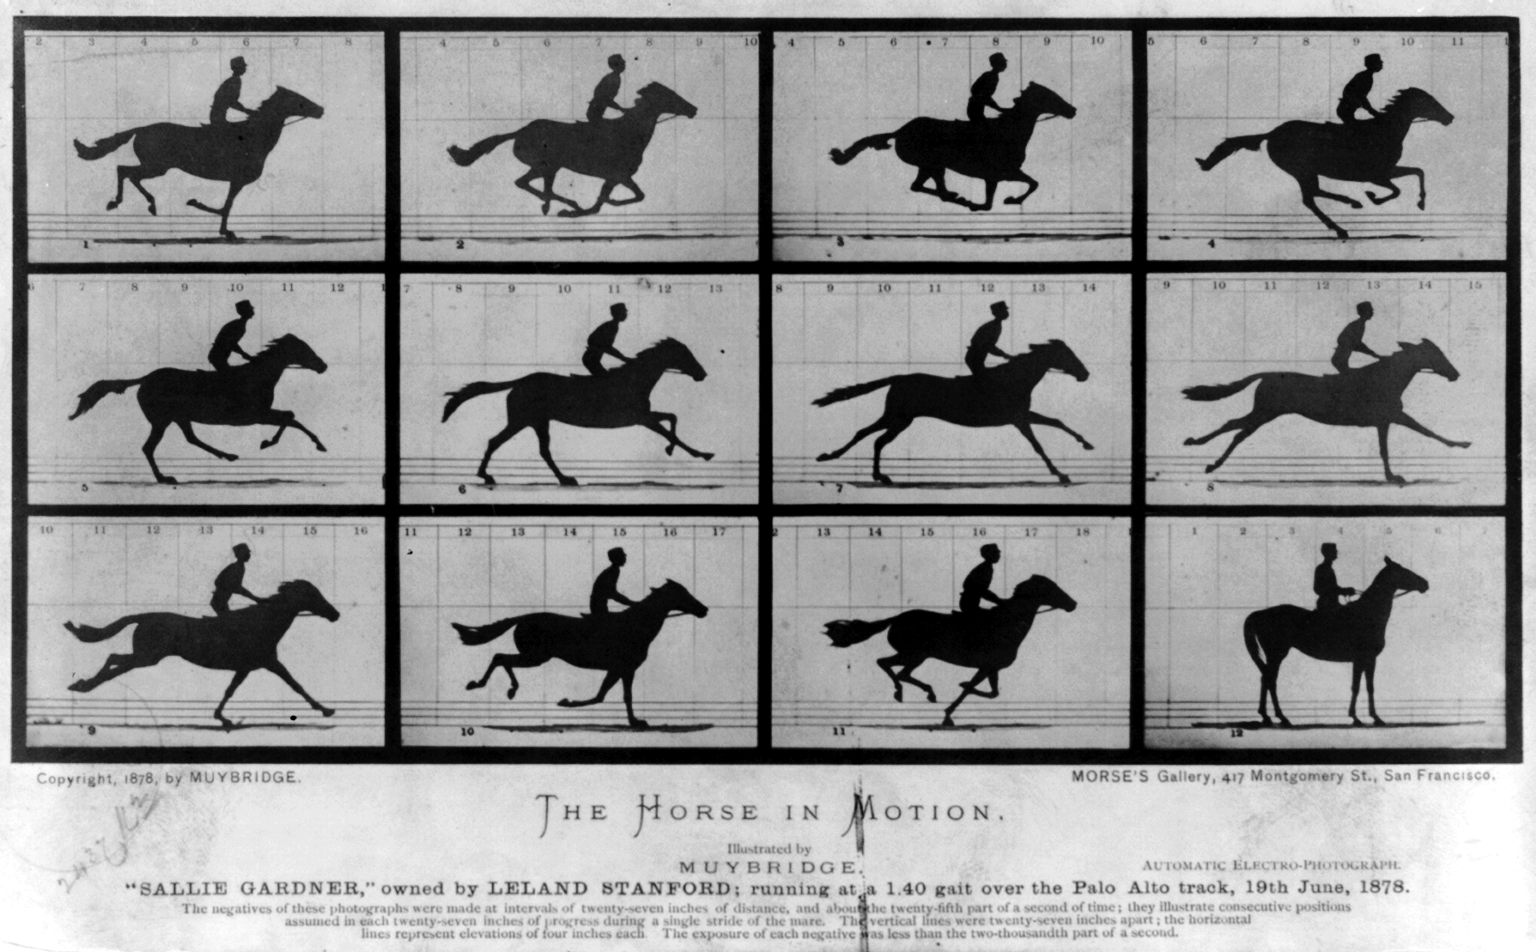 Early high speed photography required a manipulation of conventional rules, like multiple cameras being triggered in sequence in this 1878 collection.